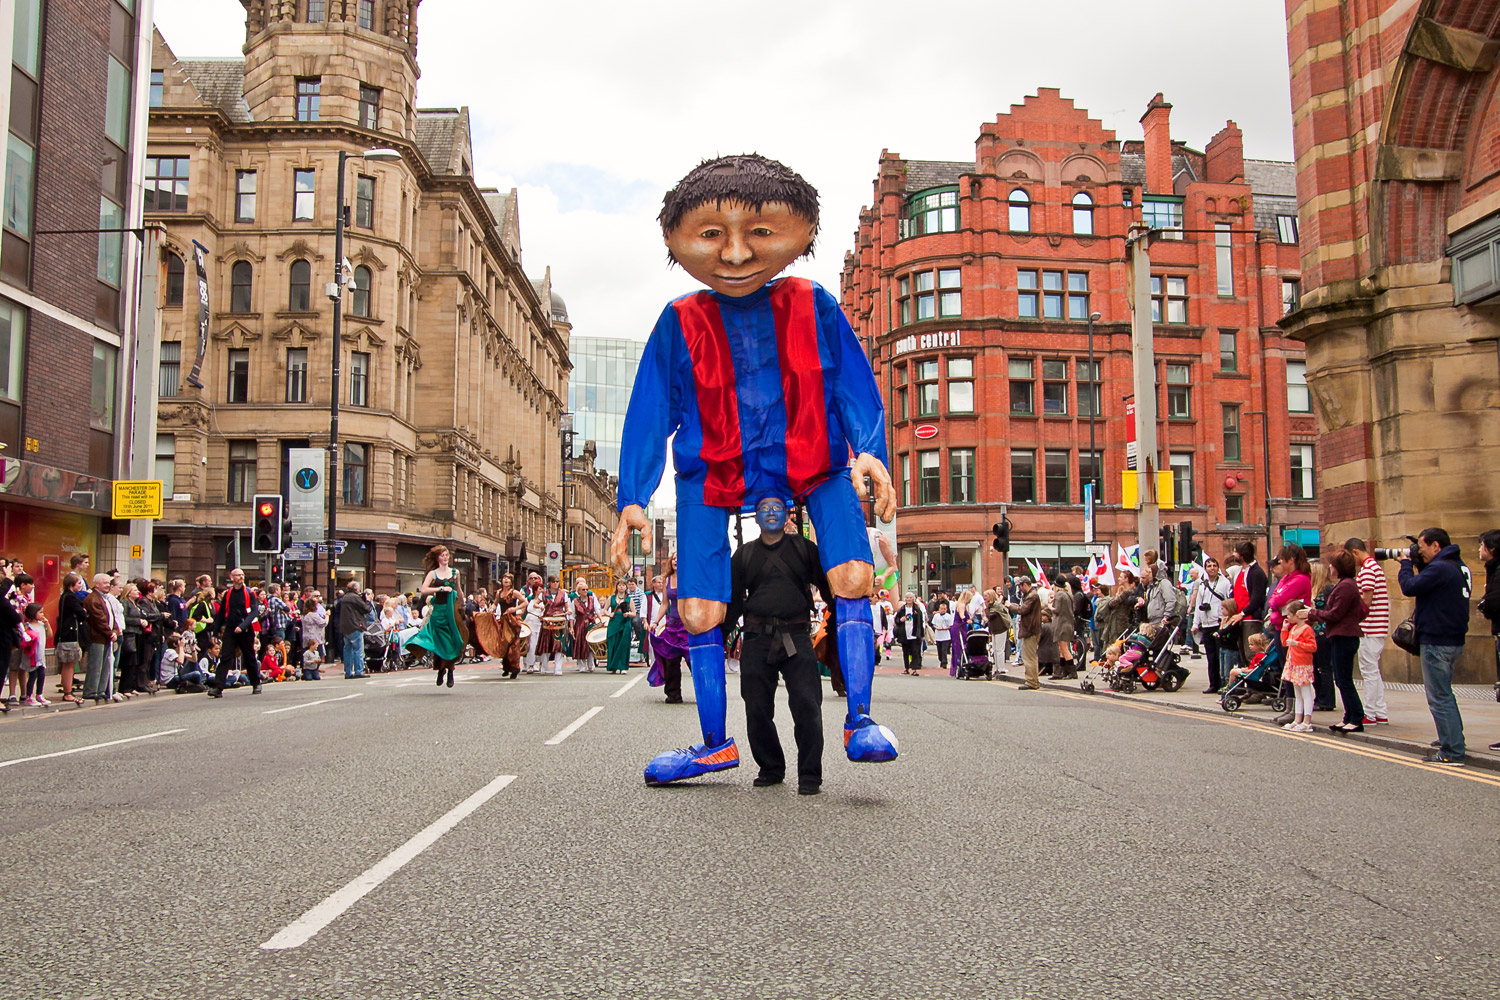 Manchester Day Parade, 2 June